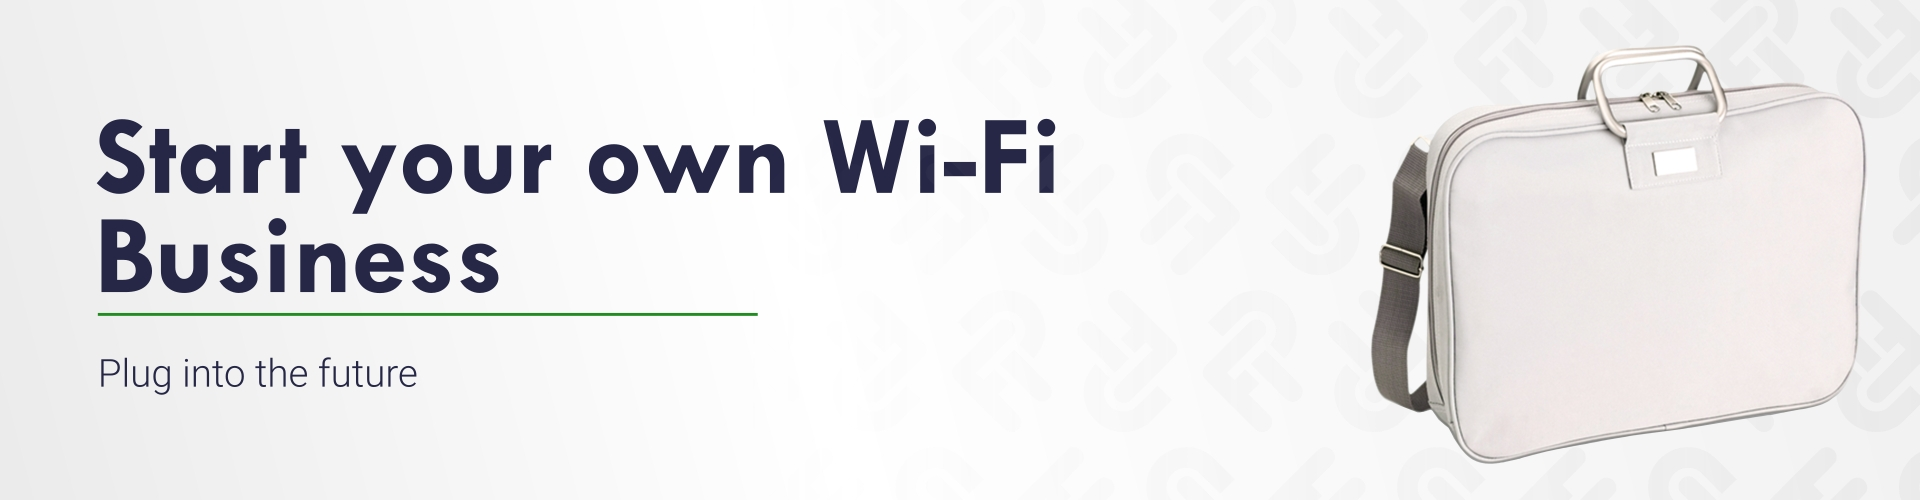 Start your own Wi-Fi business